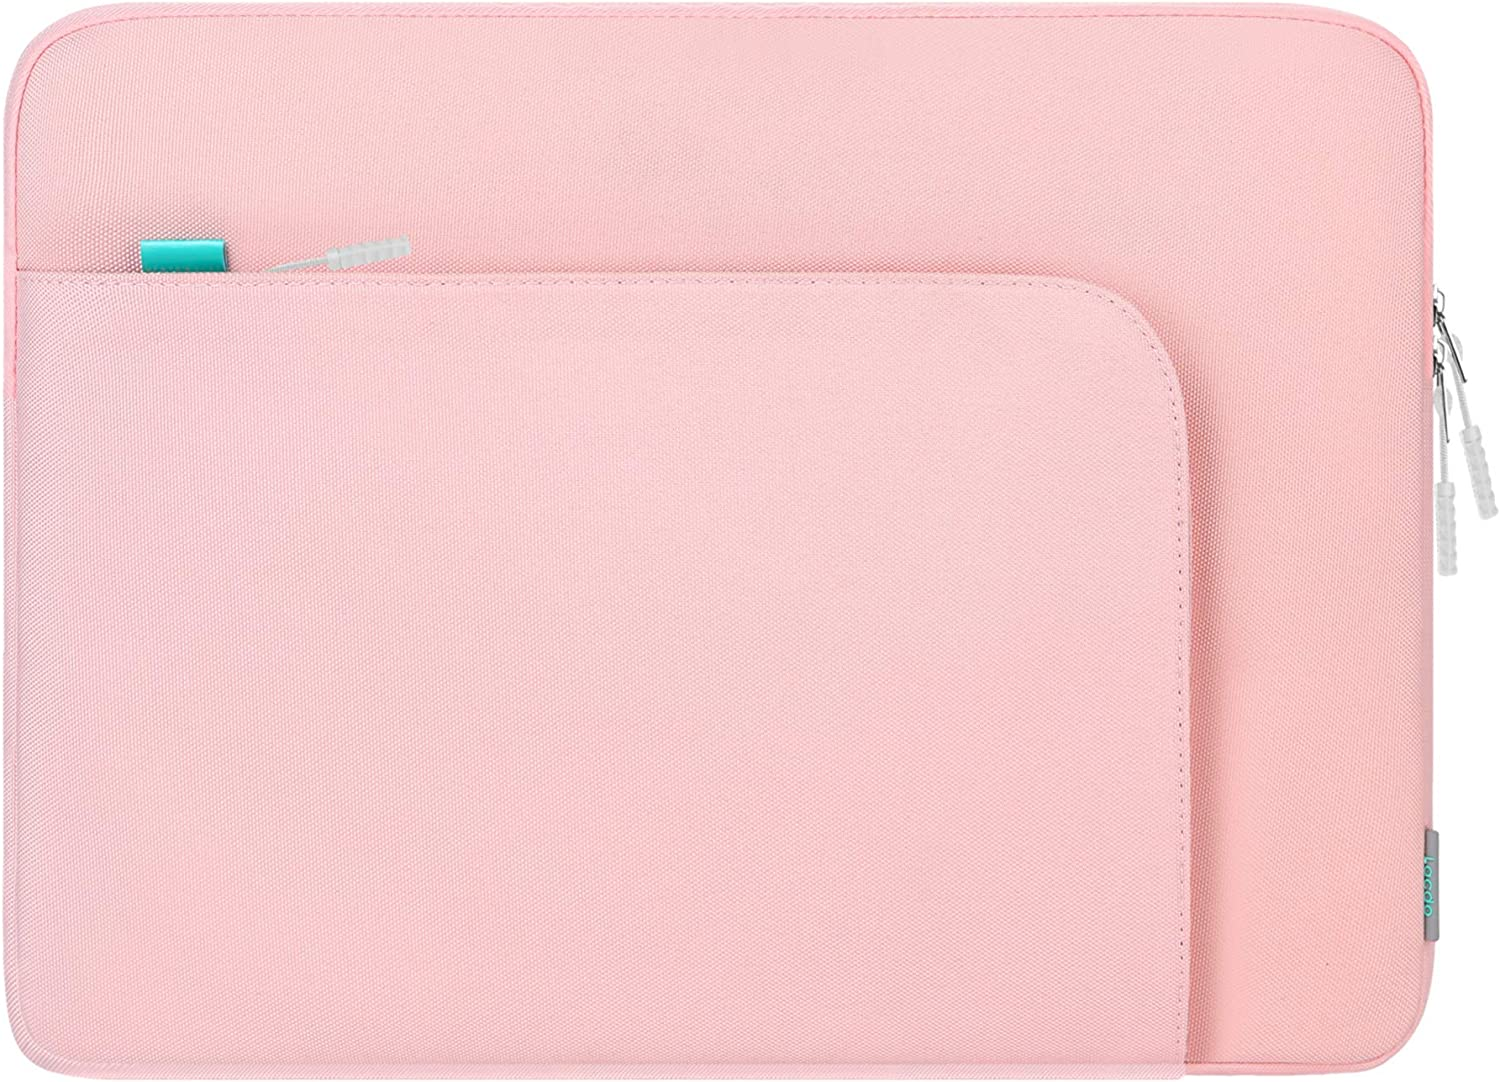 Lacdo Chromebook Case 11 Inch Laptop Sleeve for 11.6